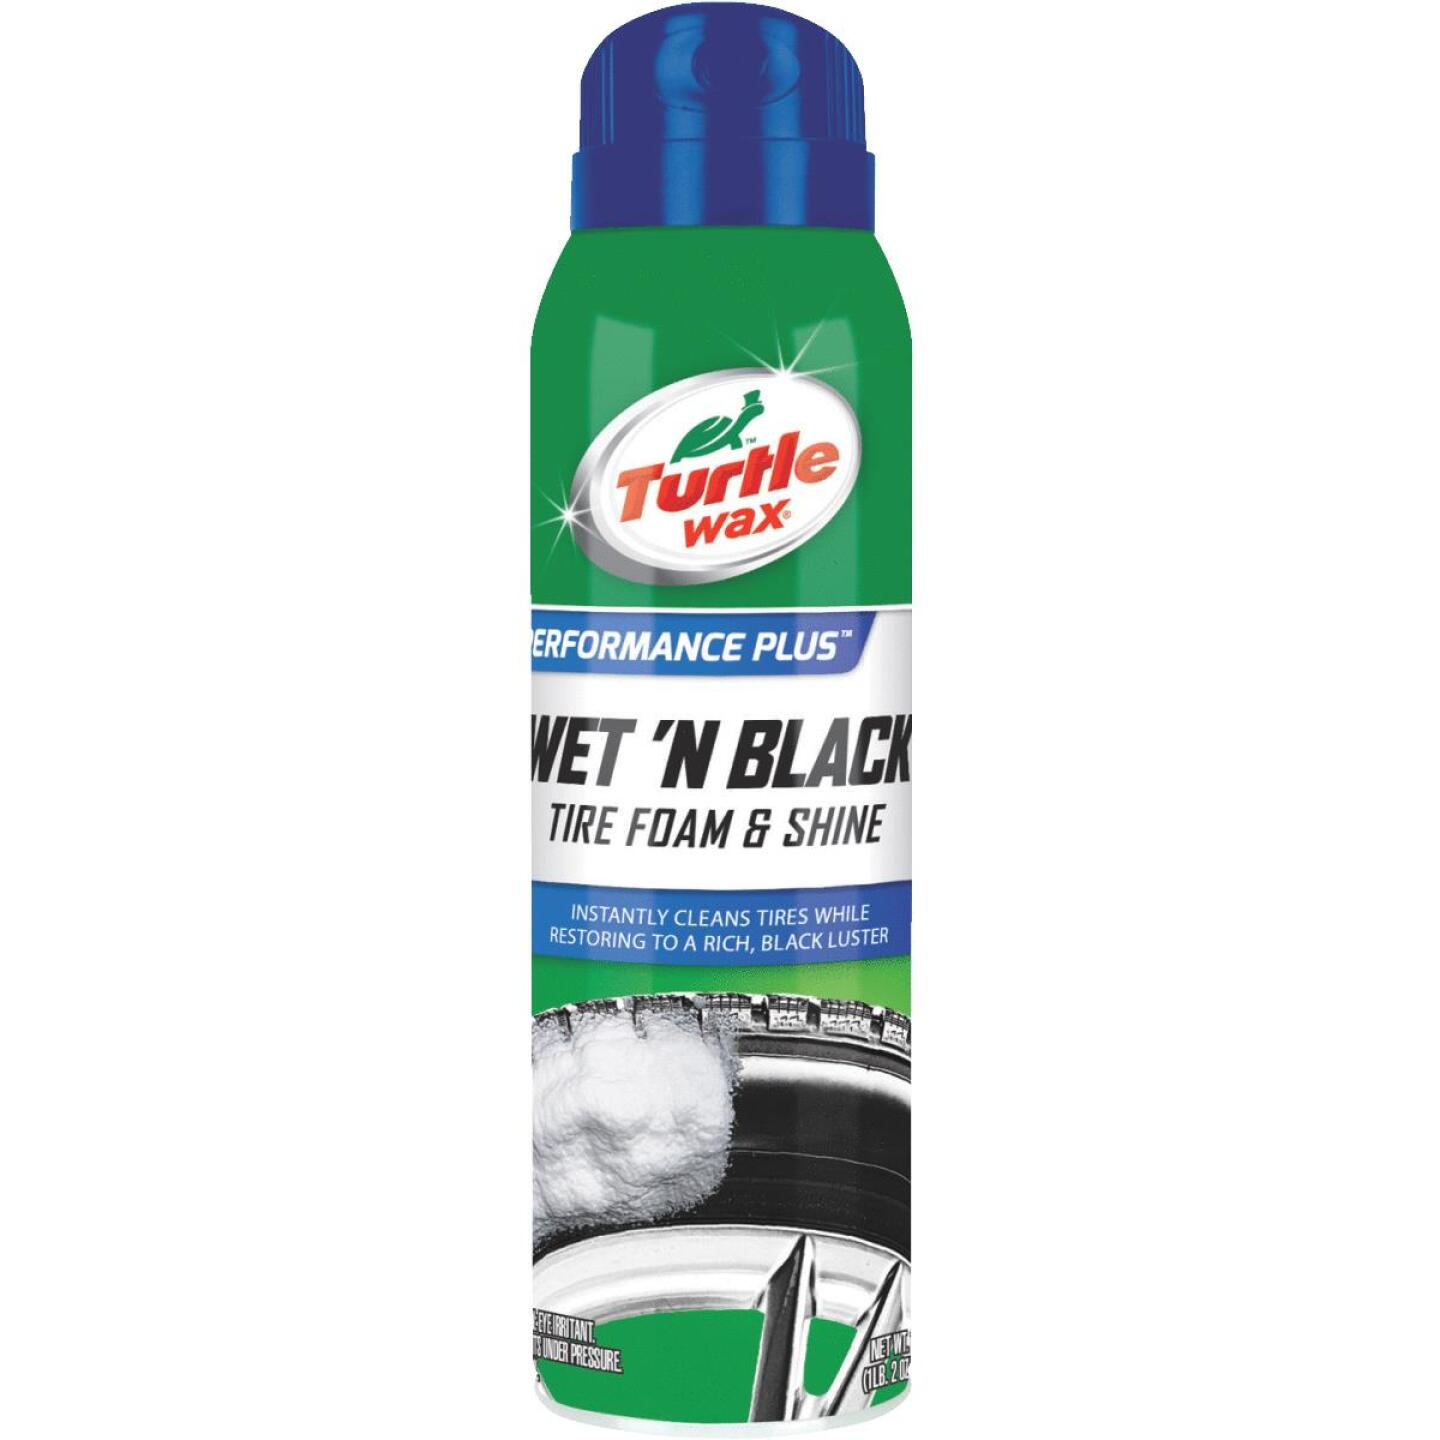 Turtle Wax Wet 'N Black 18 Oz. Aerosol Spray Foam Tire Shine Image 1